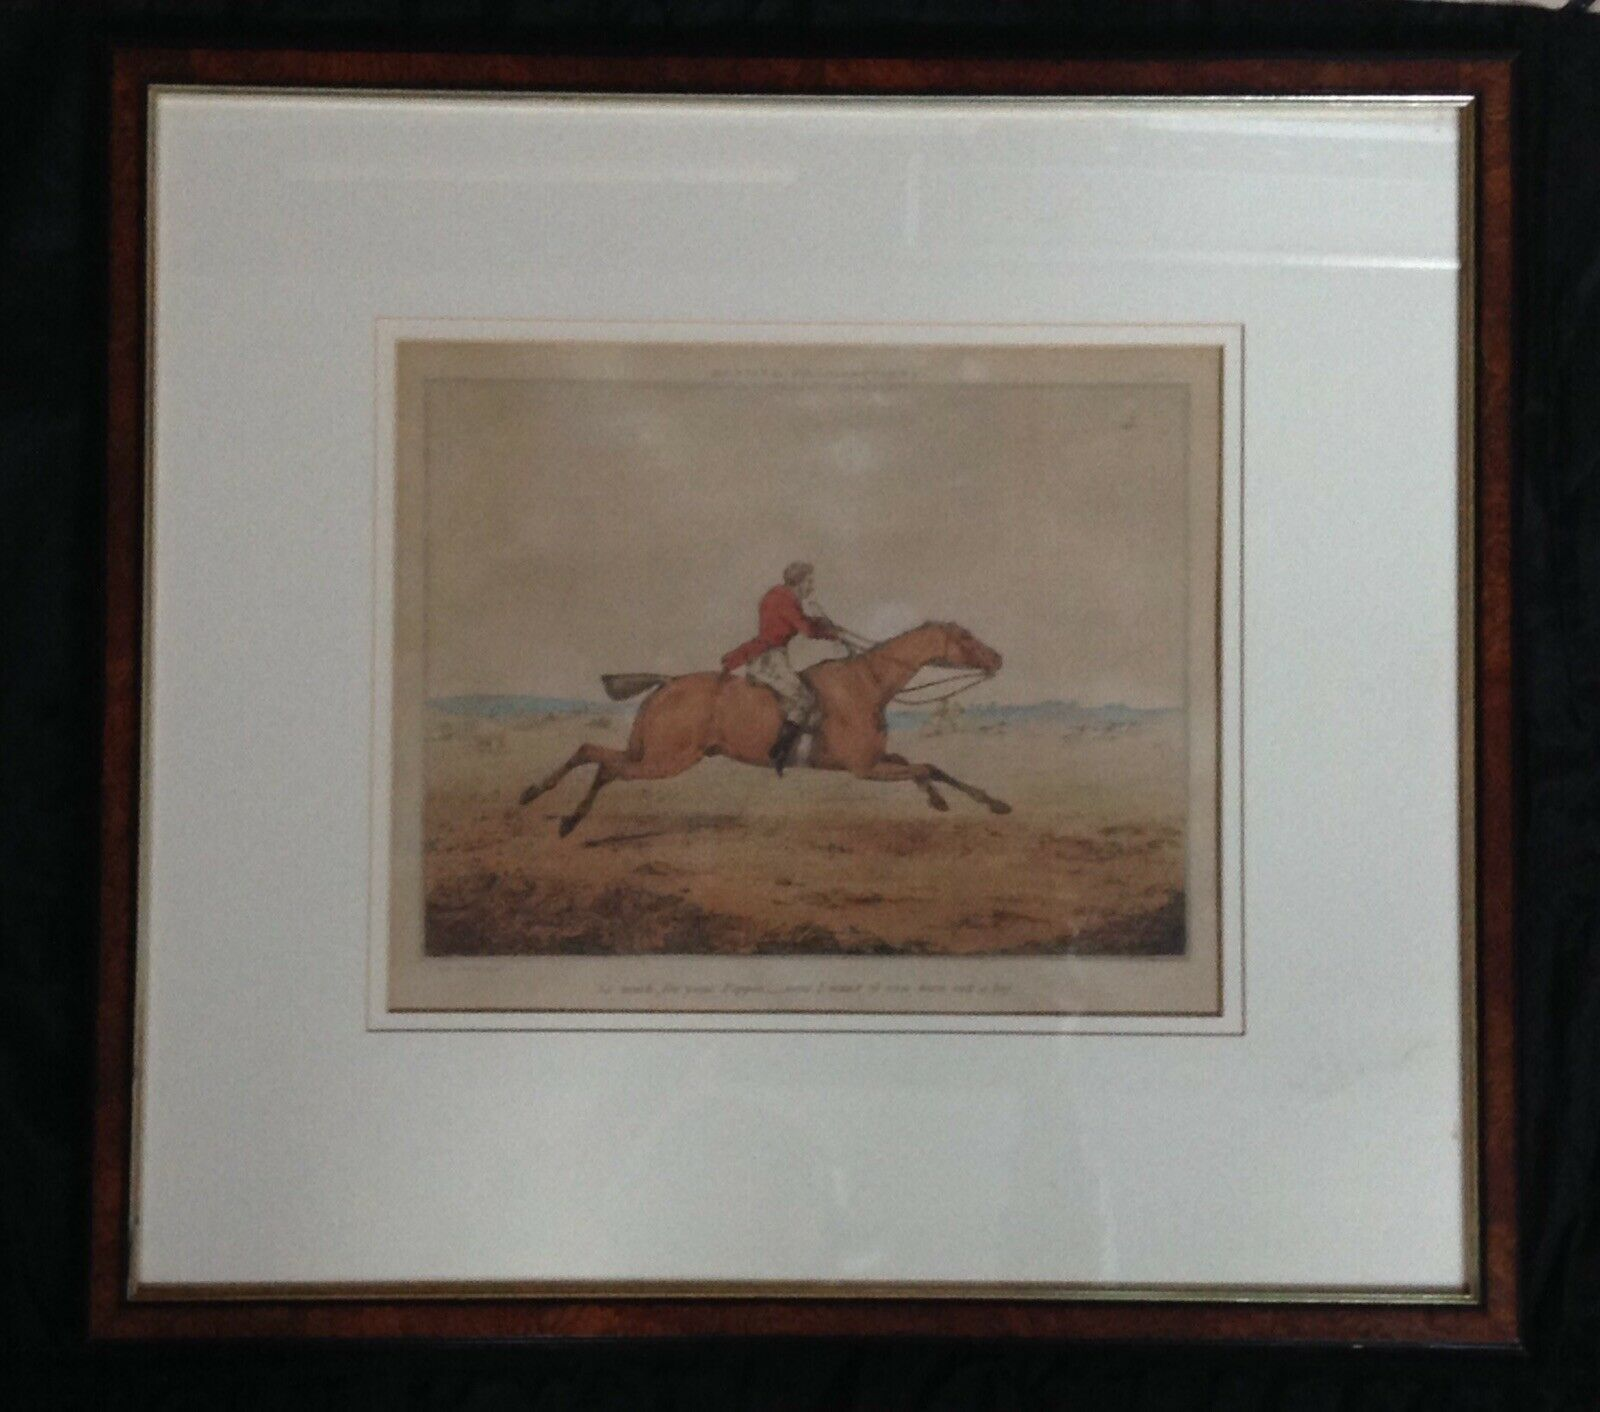 C1800 Original  Hand Colour Aquatint Engraving By H. Alken Hunting Recollections  new style